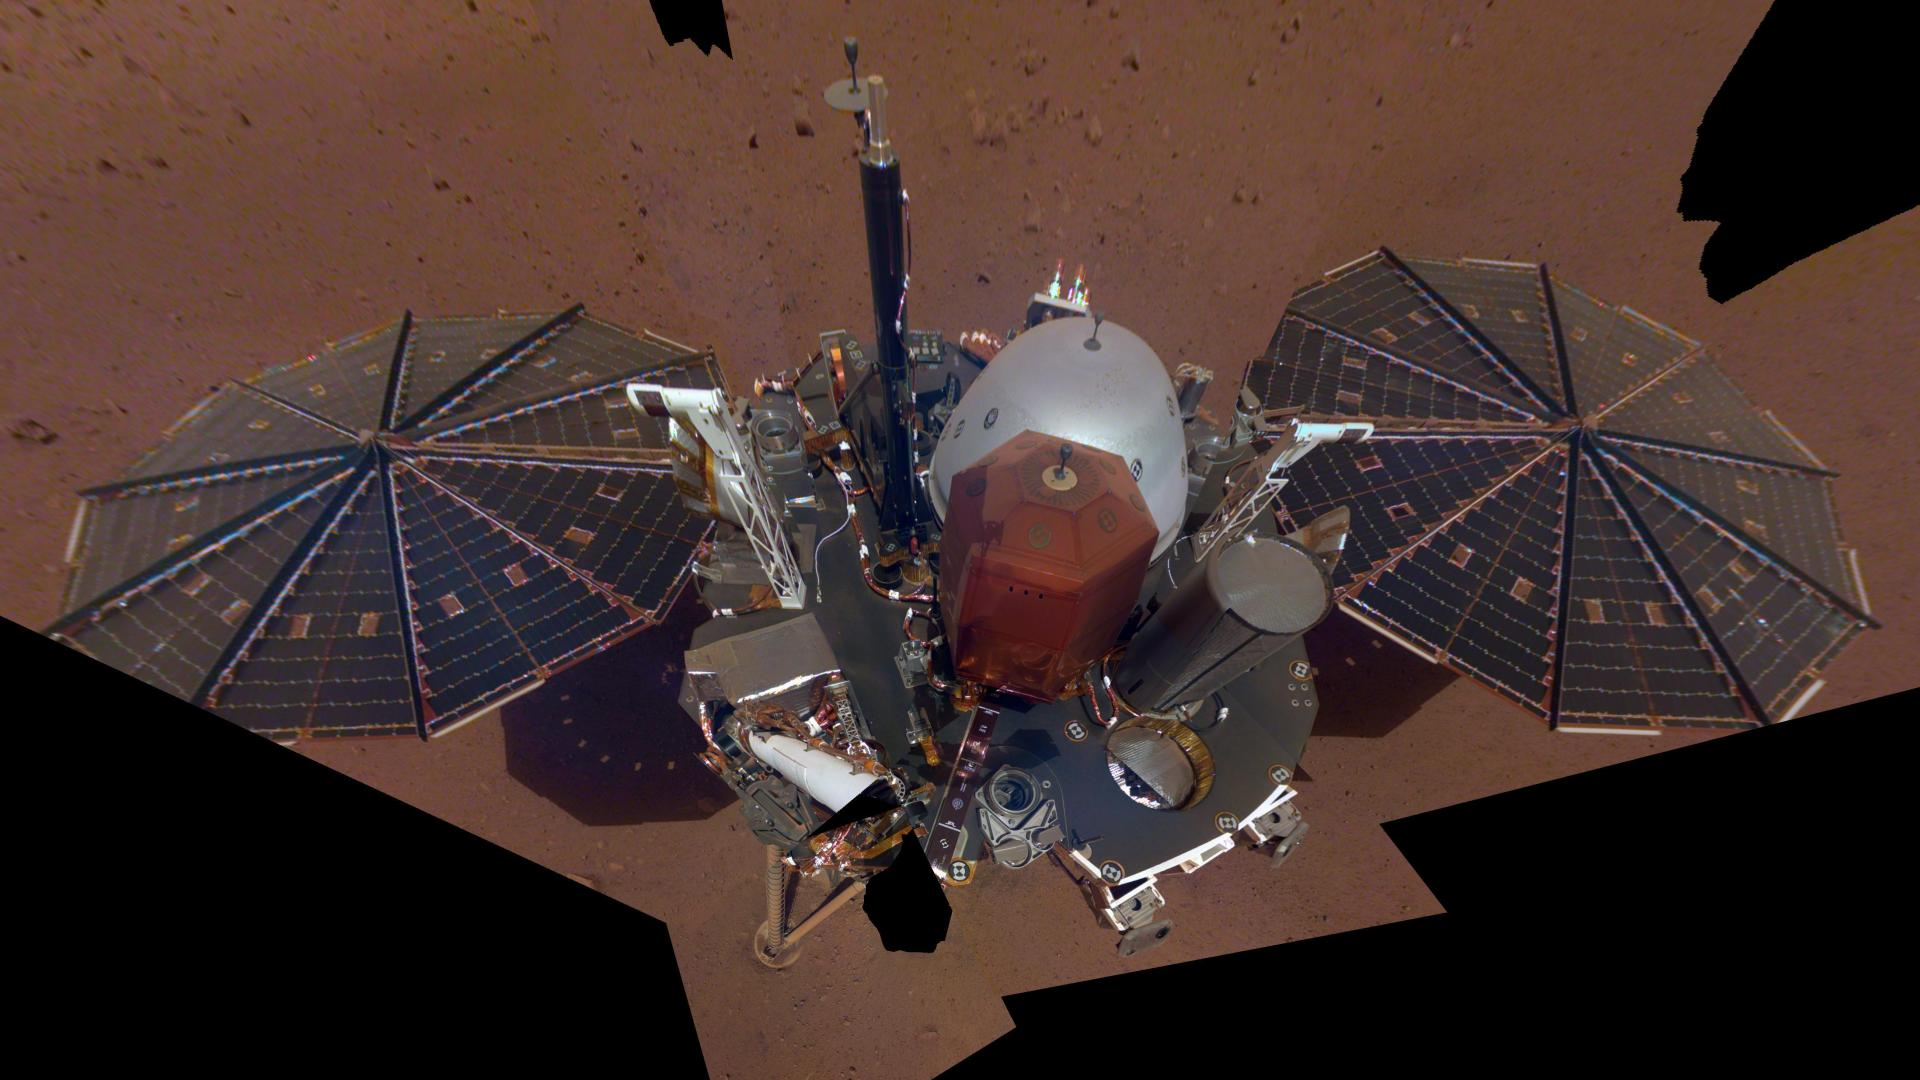 The InSight lander on the Martian surface